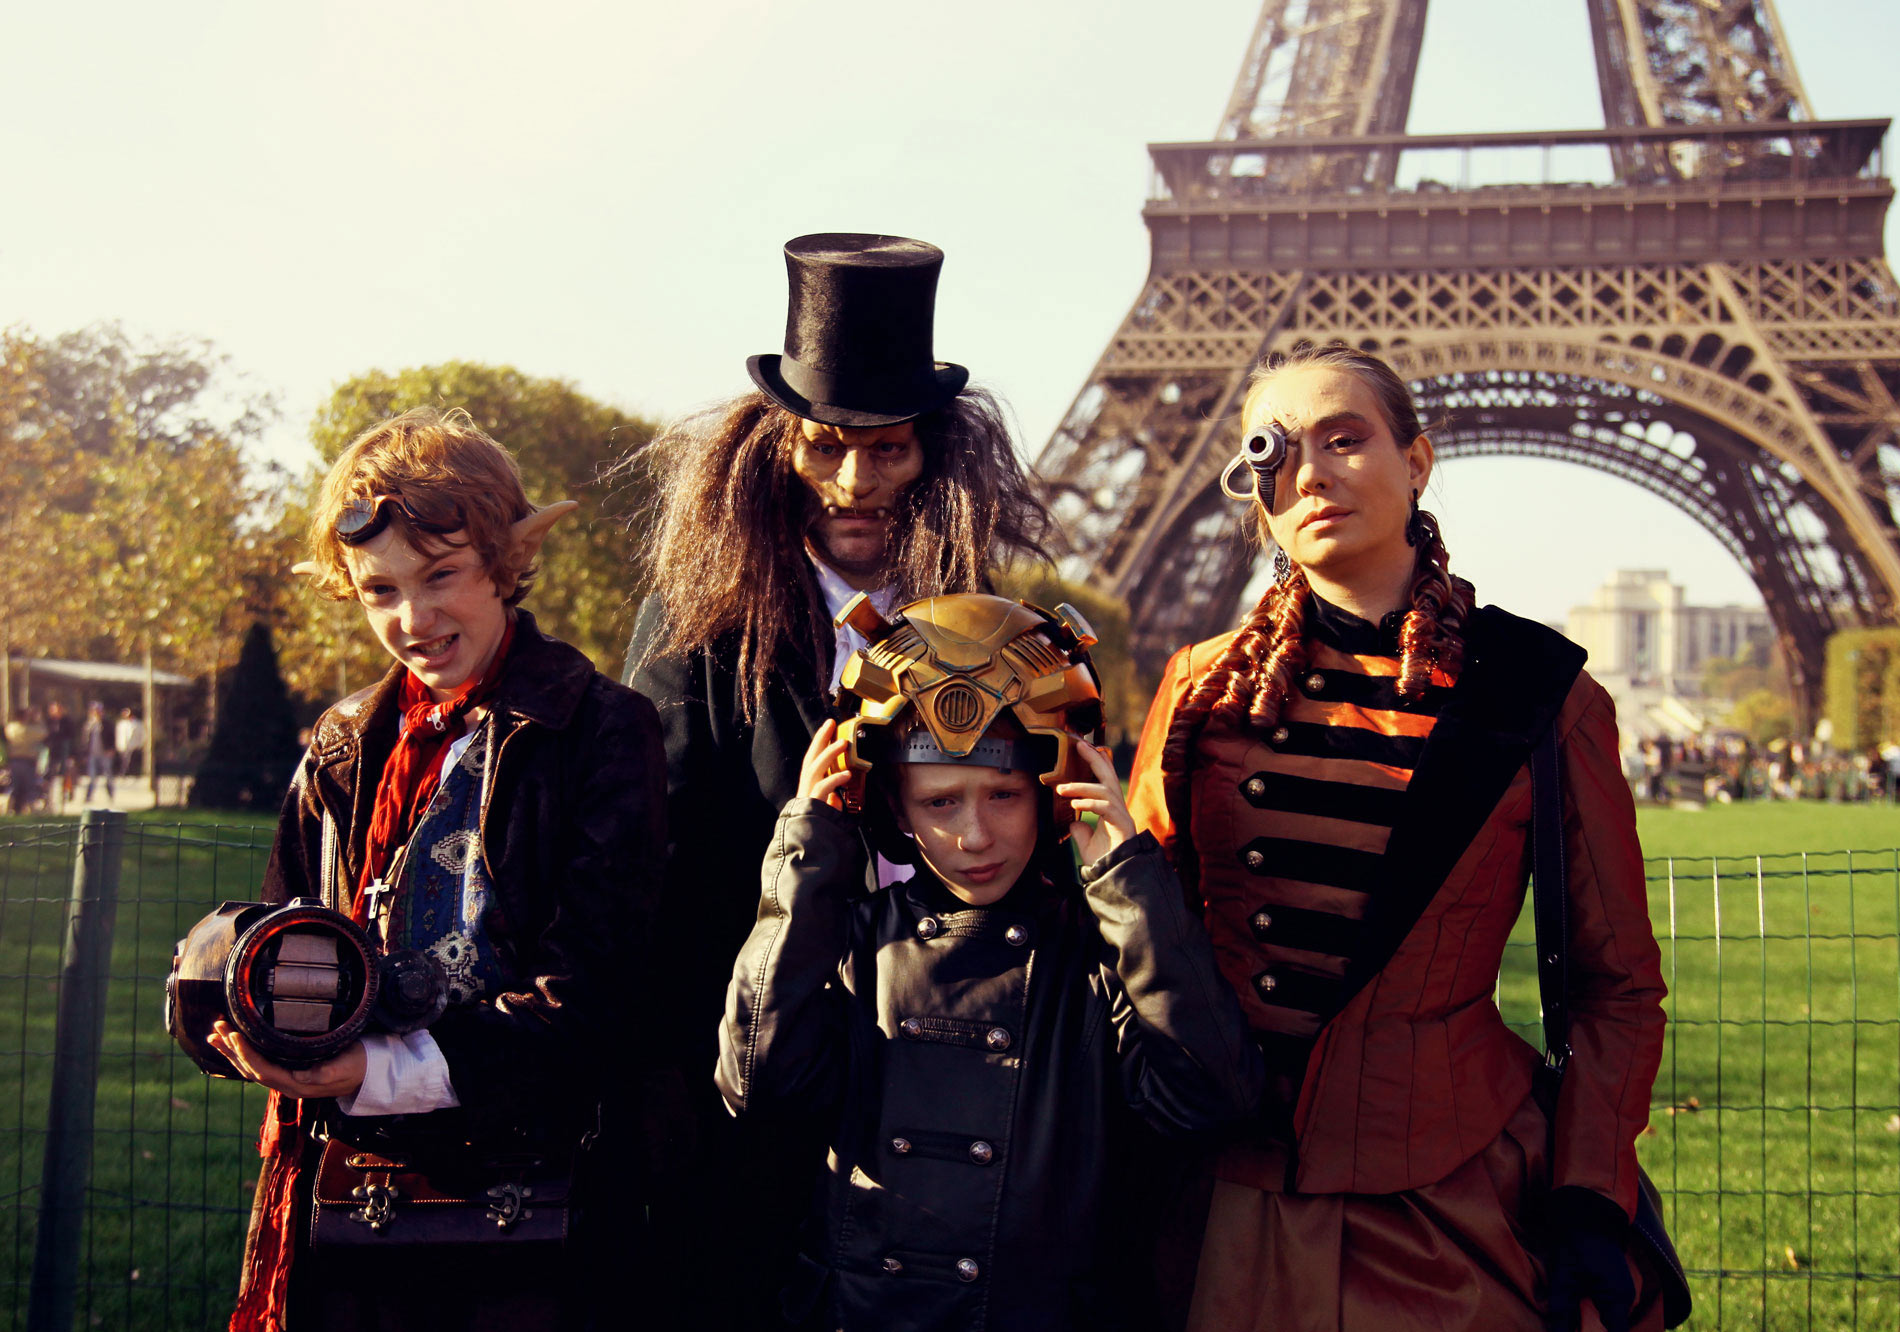 Steampunk meeting in Paris